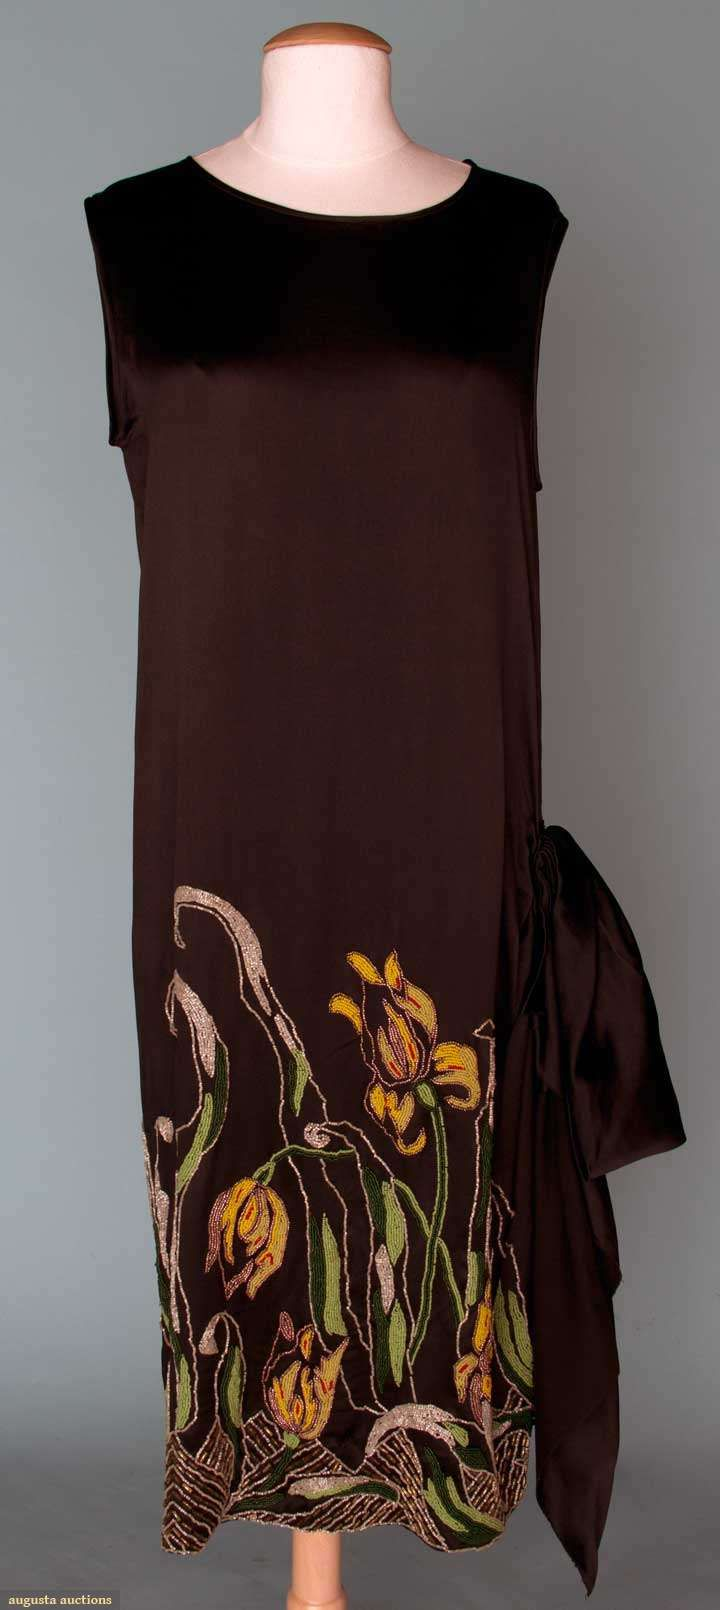 FLAPPER DRESS, BEADED IRIS, 1920s Black silk satin, large bow on L hip, F & B skirt beaded in yellows, greens, white, red & copper depicting spring garden w/ iris & tulips.